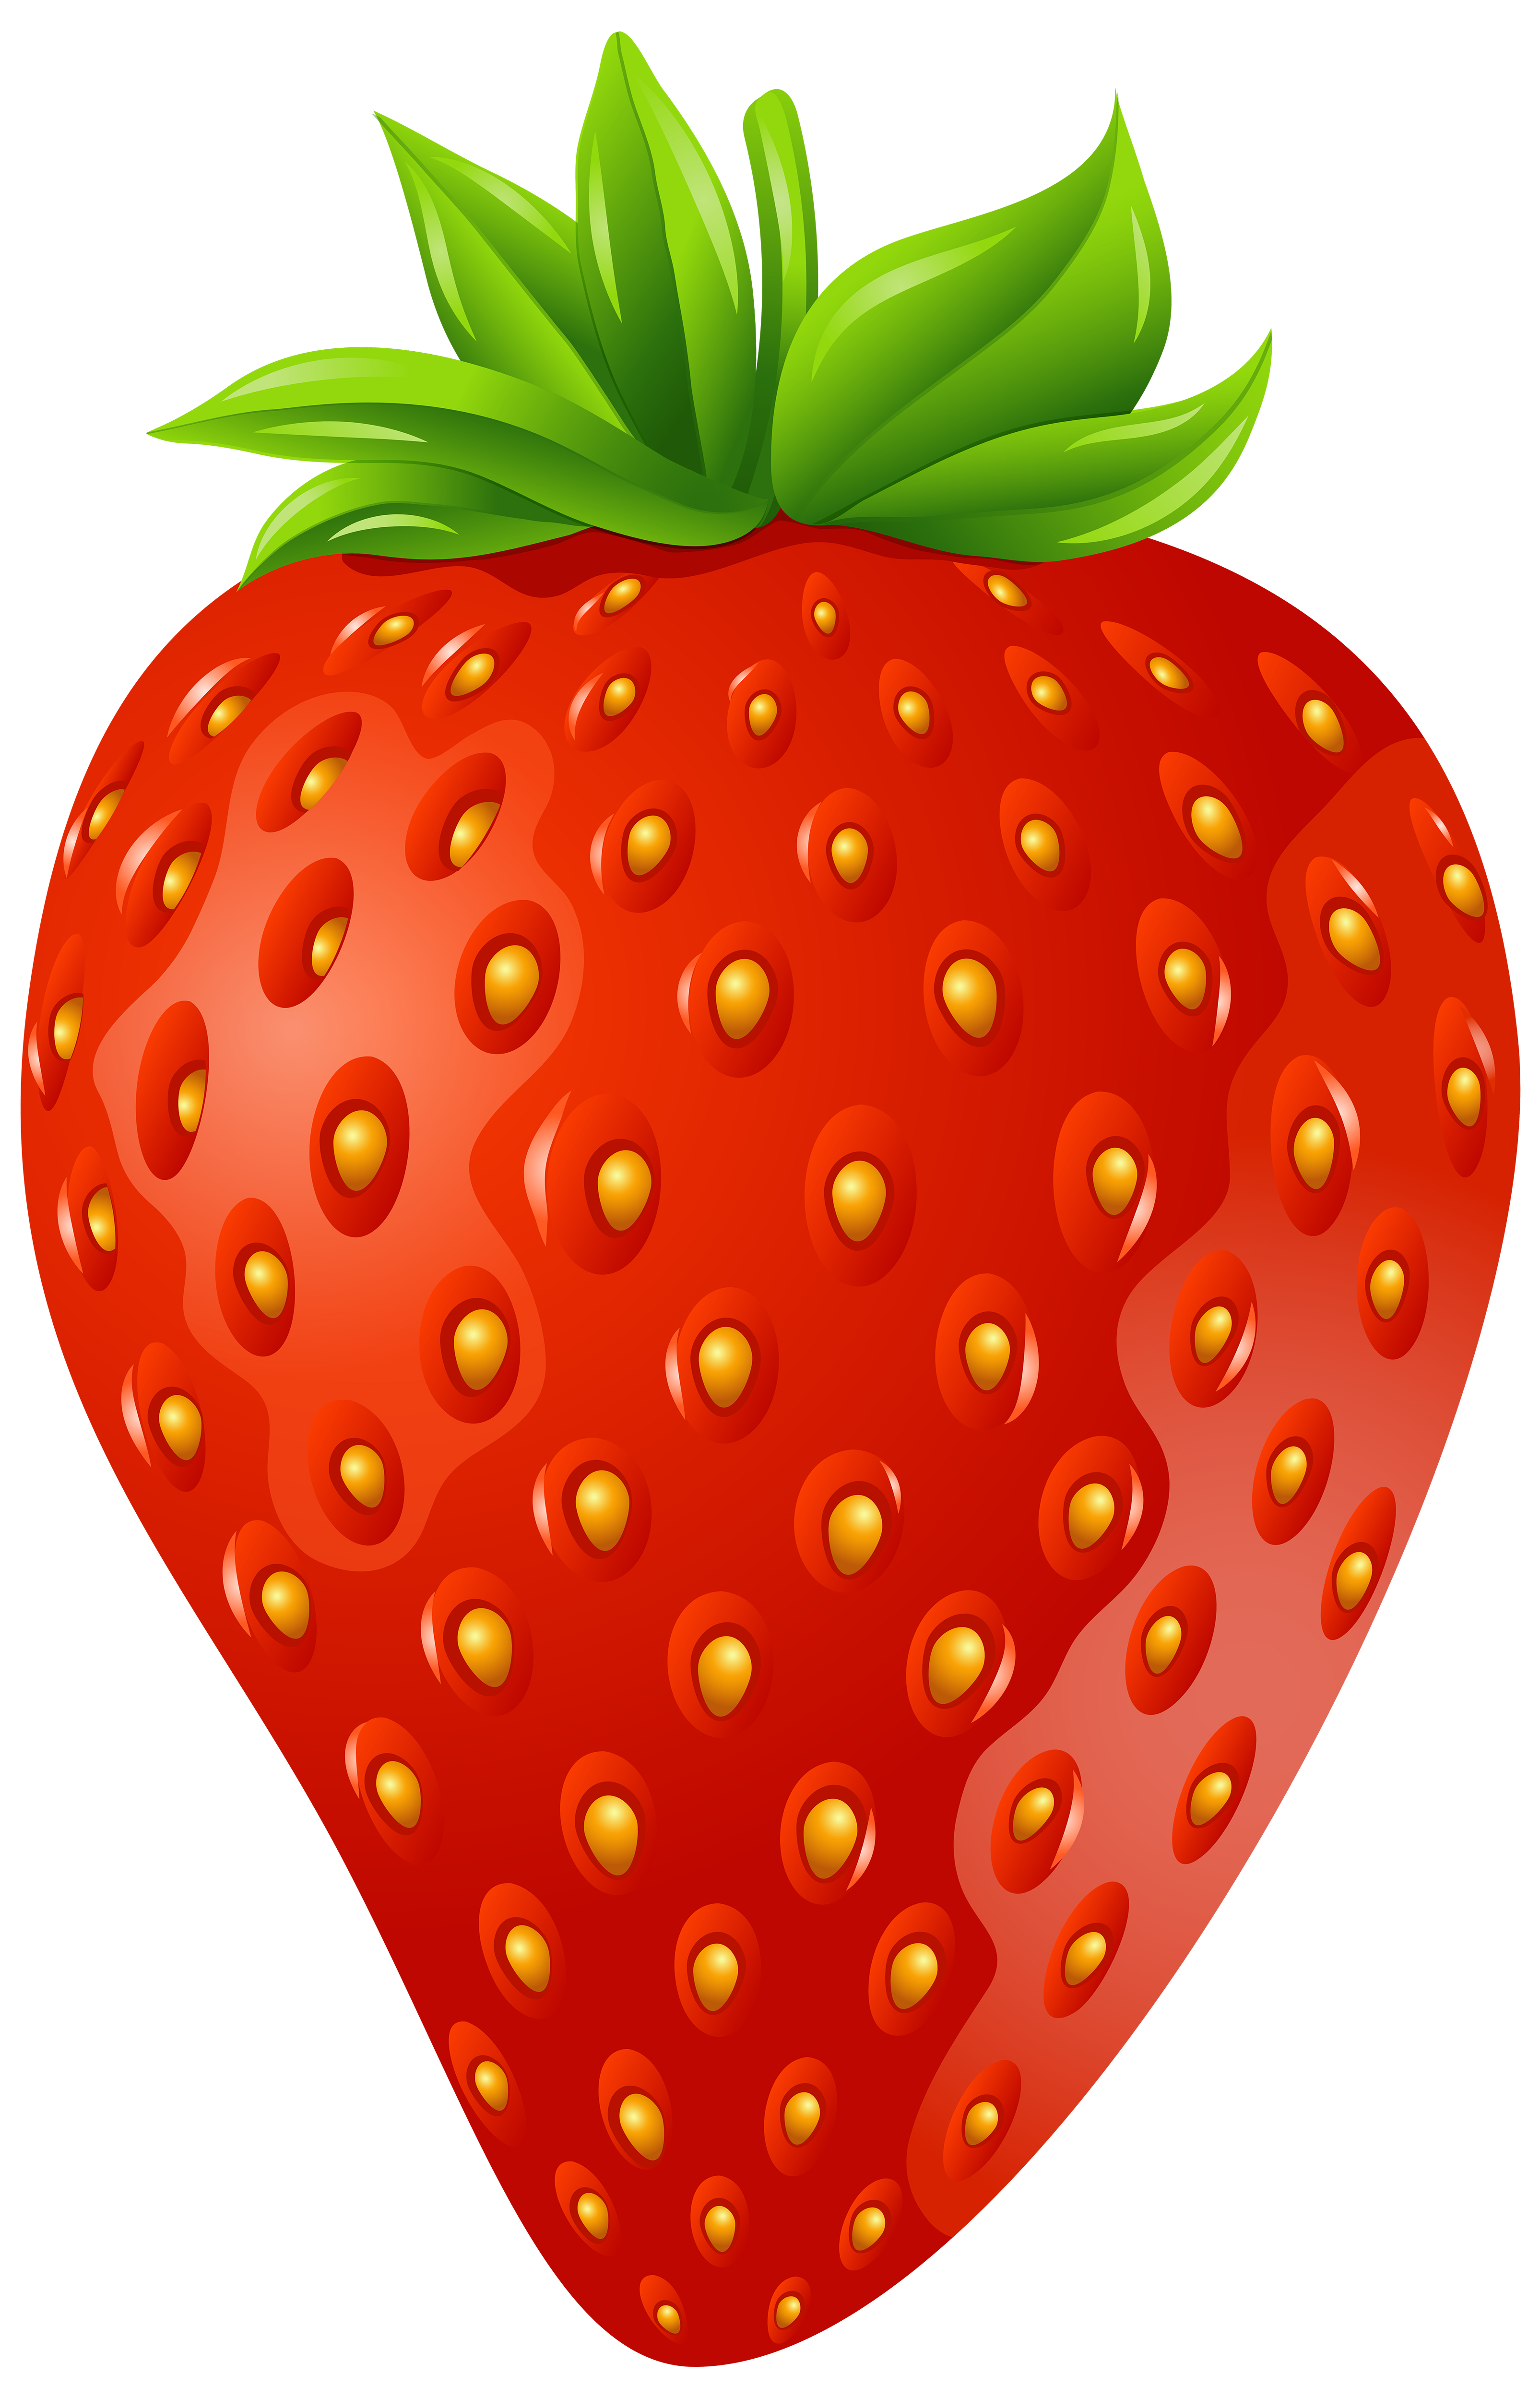 translucent strawberry clipart clipground strawberry clip art download strawberry clip art download